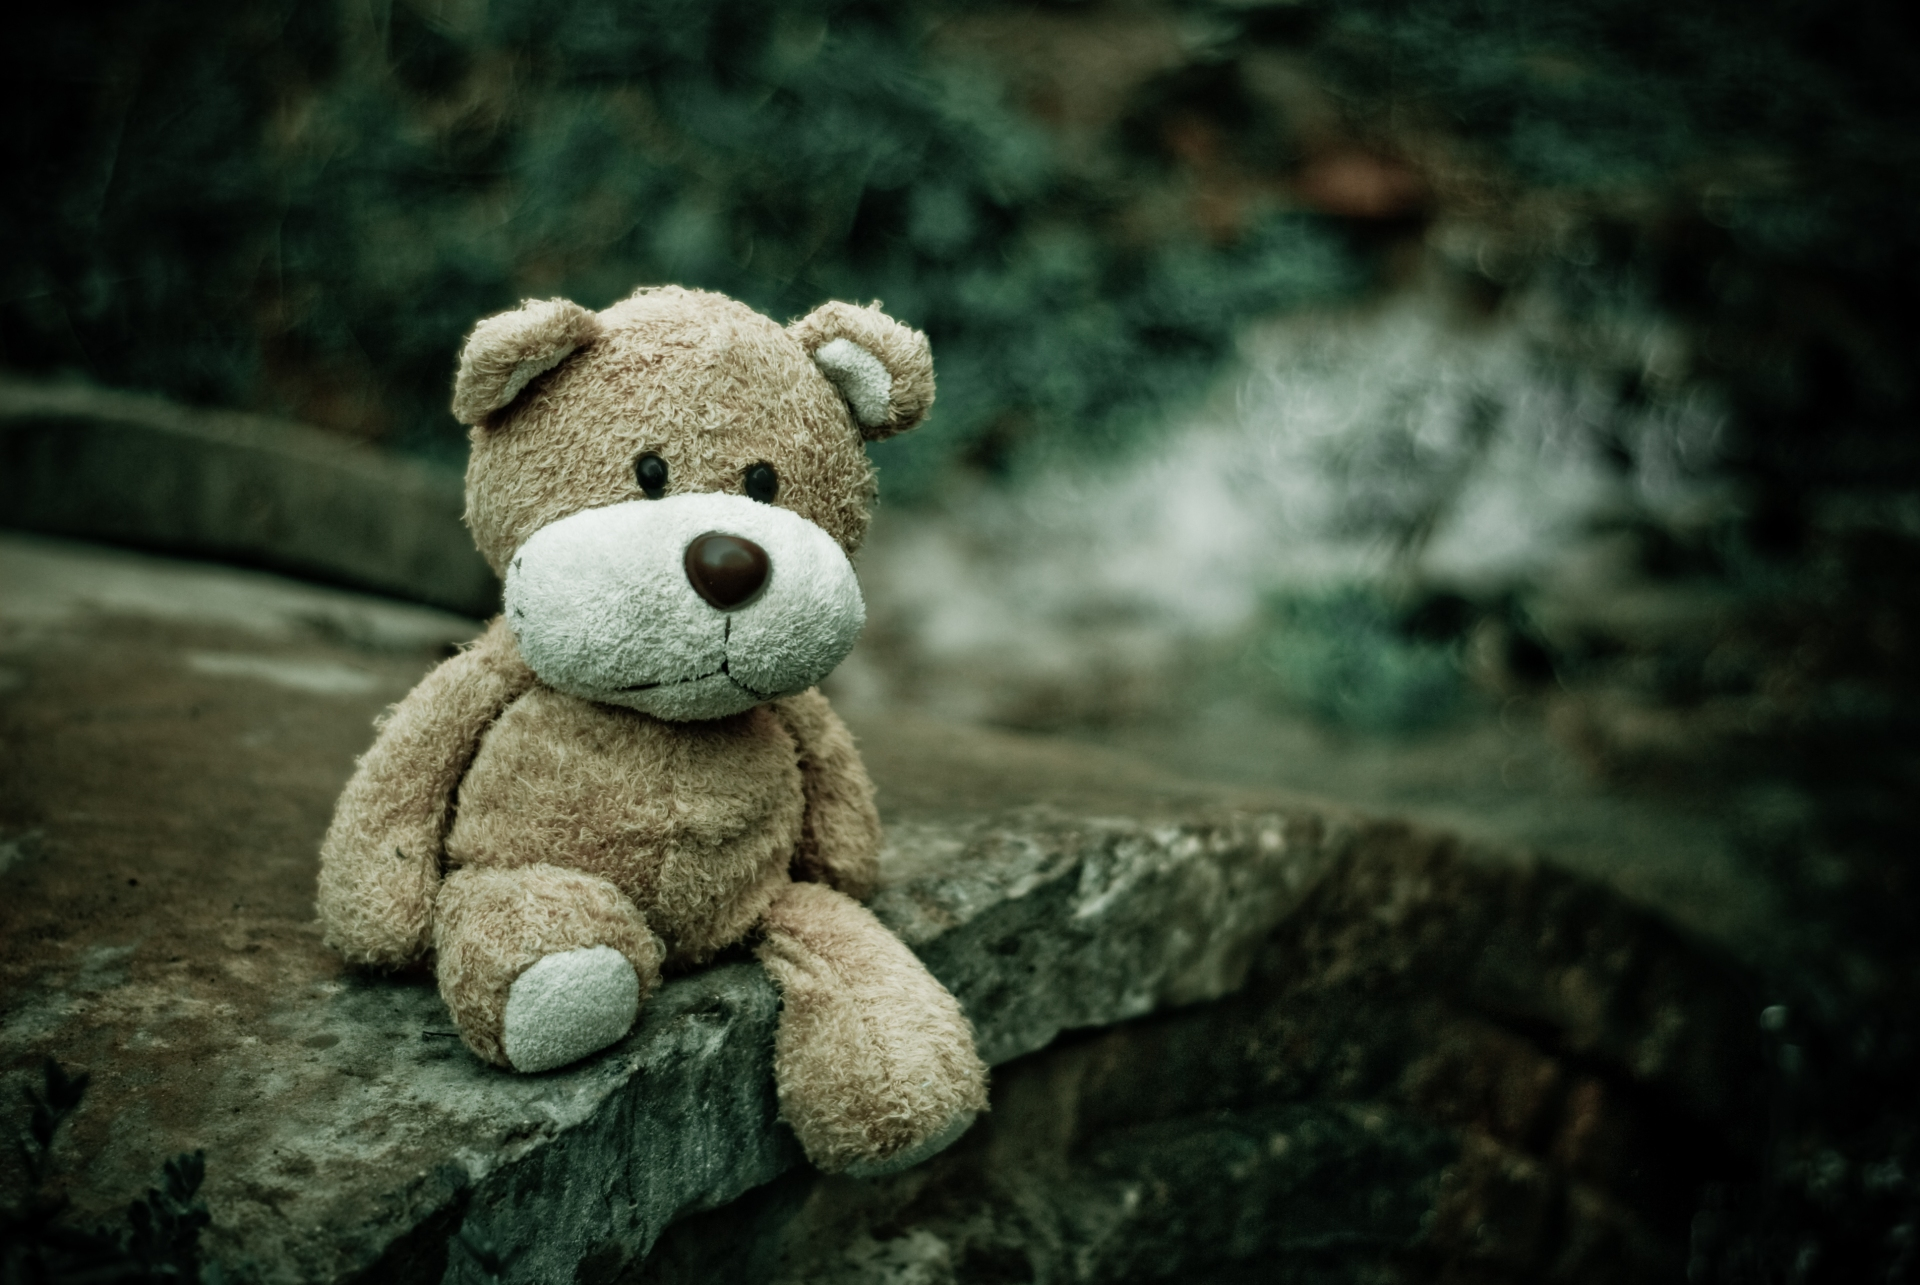 sibling sexual child abuse